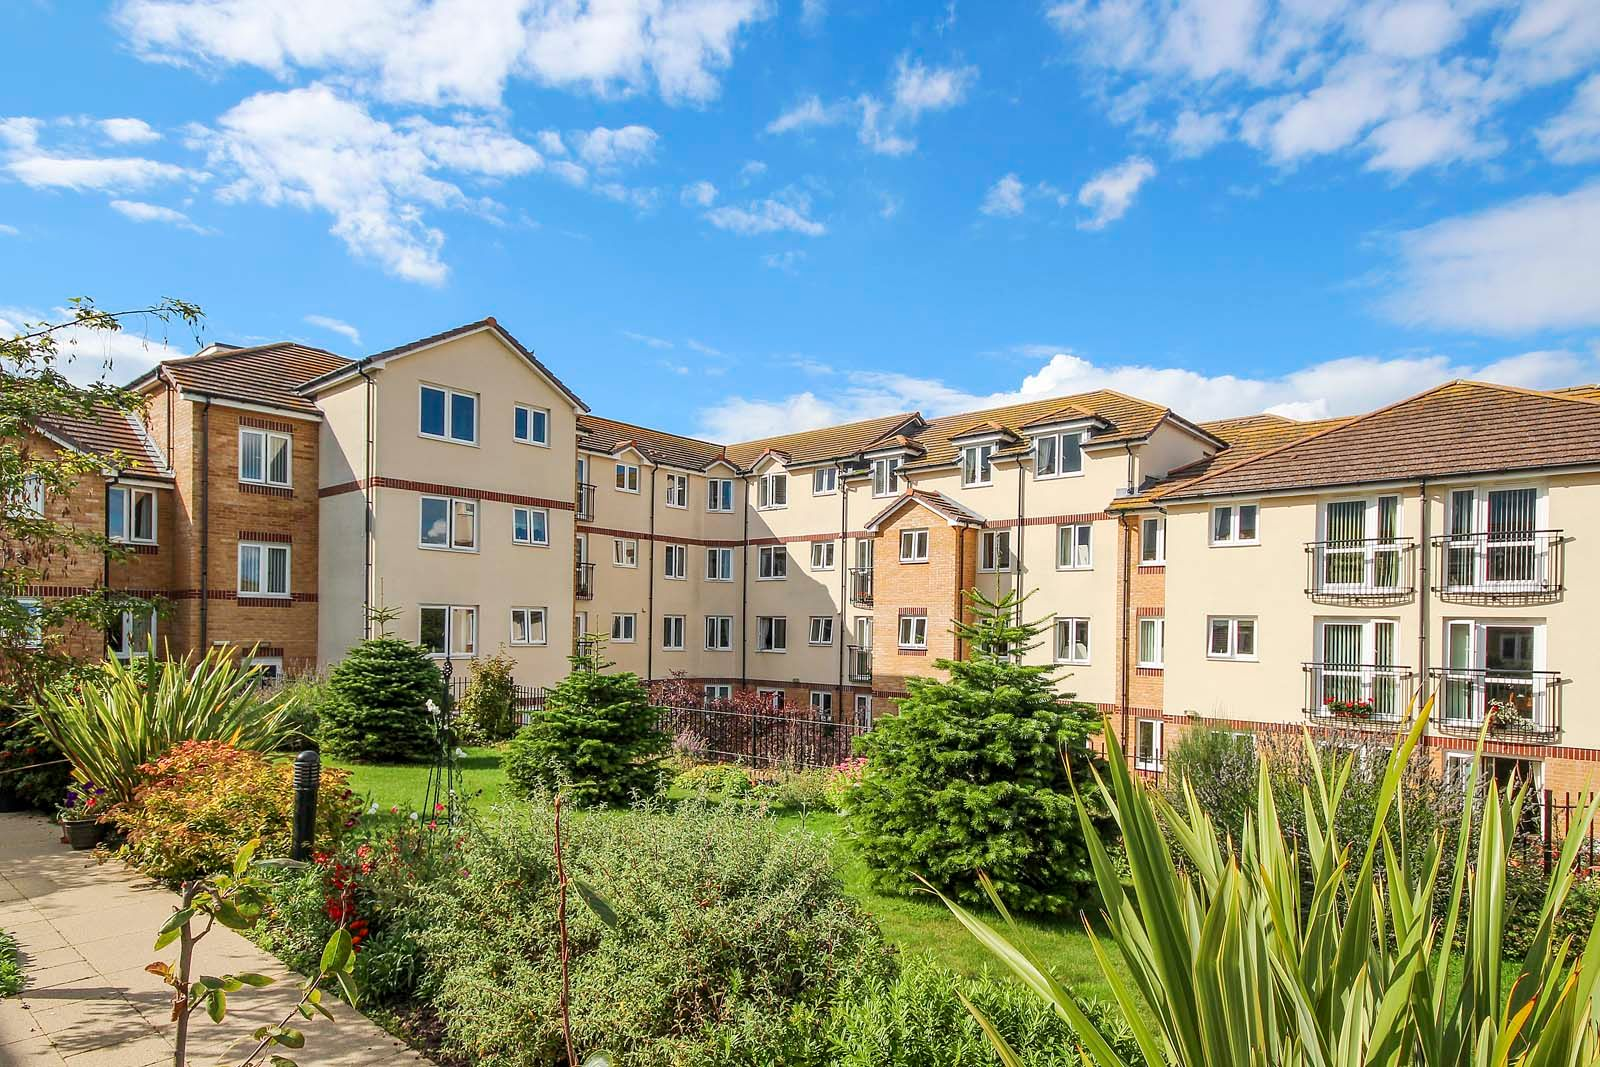 2 bed for sale in East Preston - Communal grounds (Property Image 7)